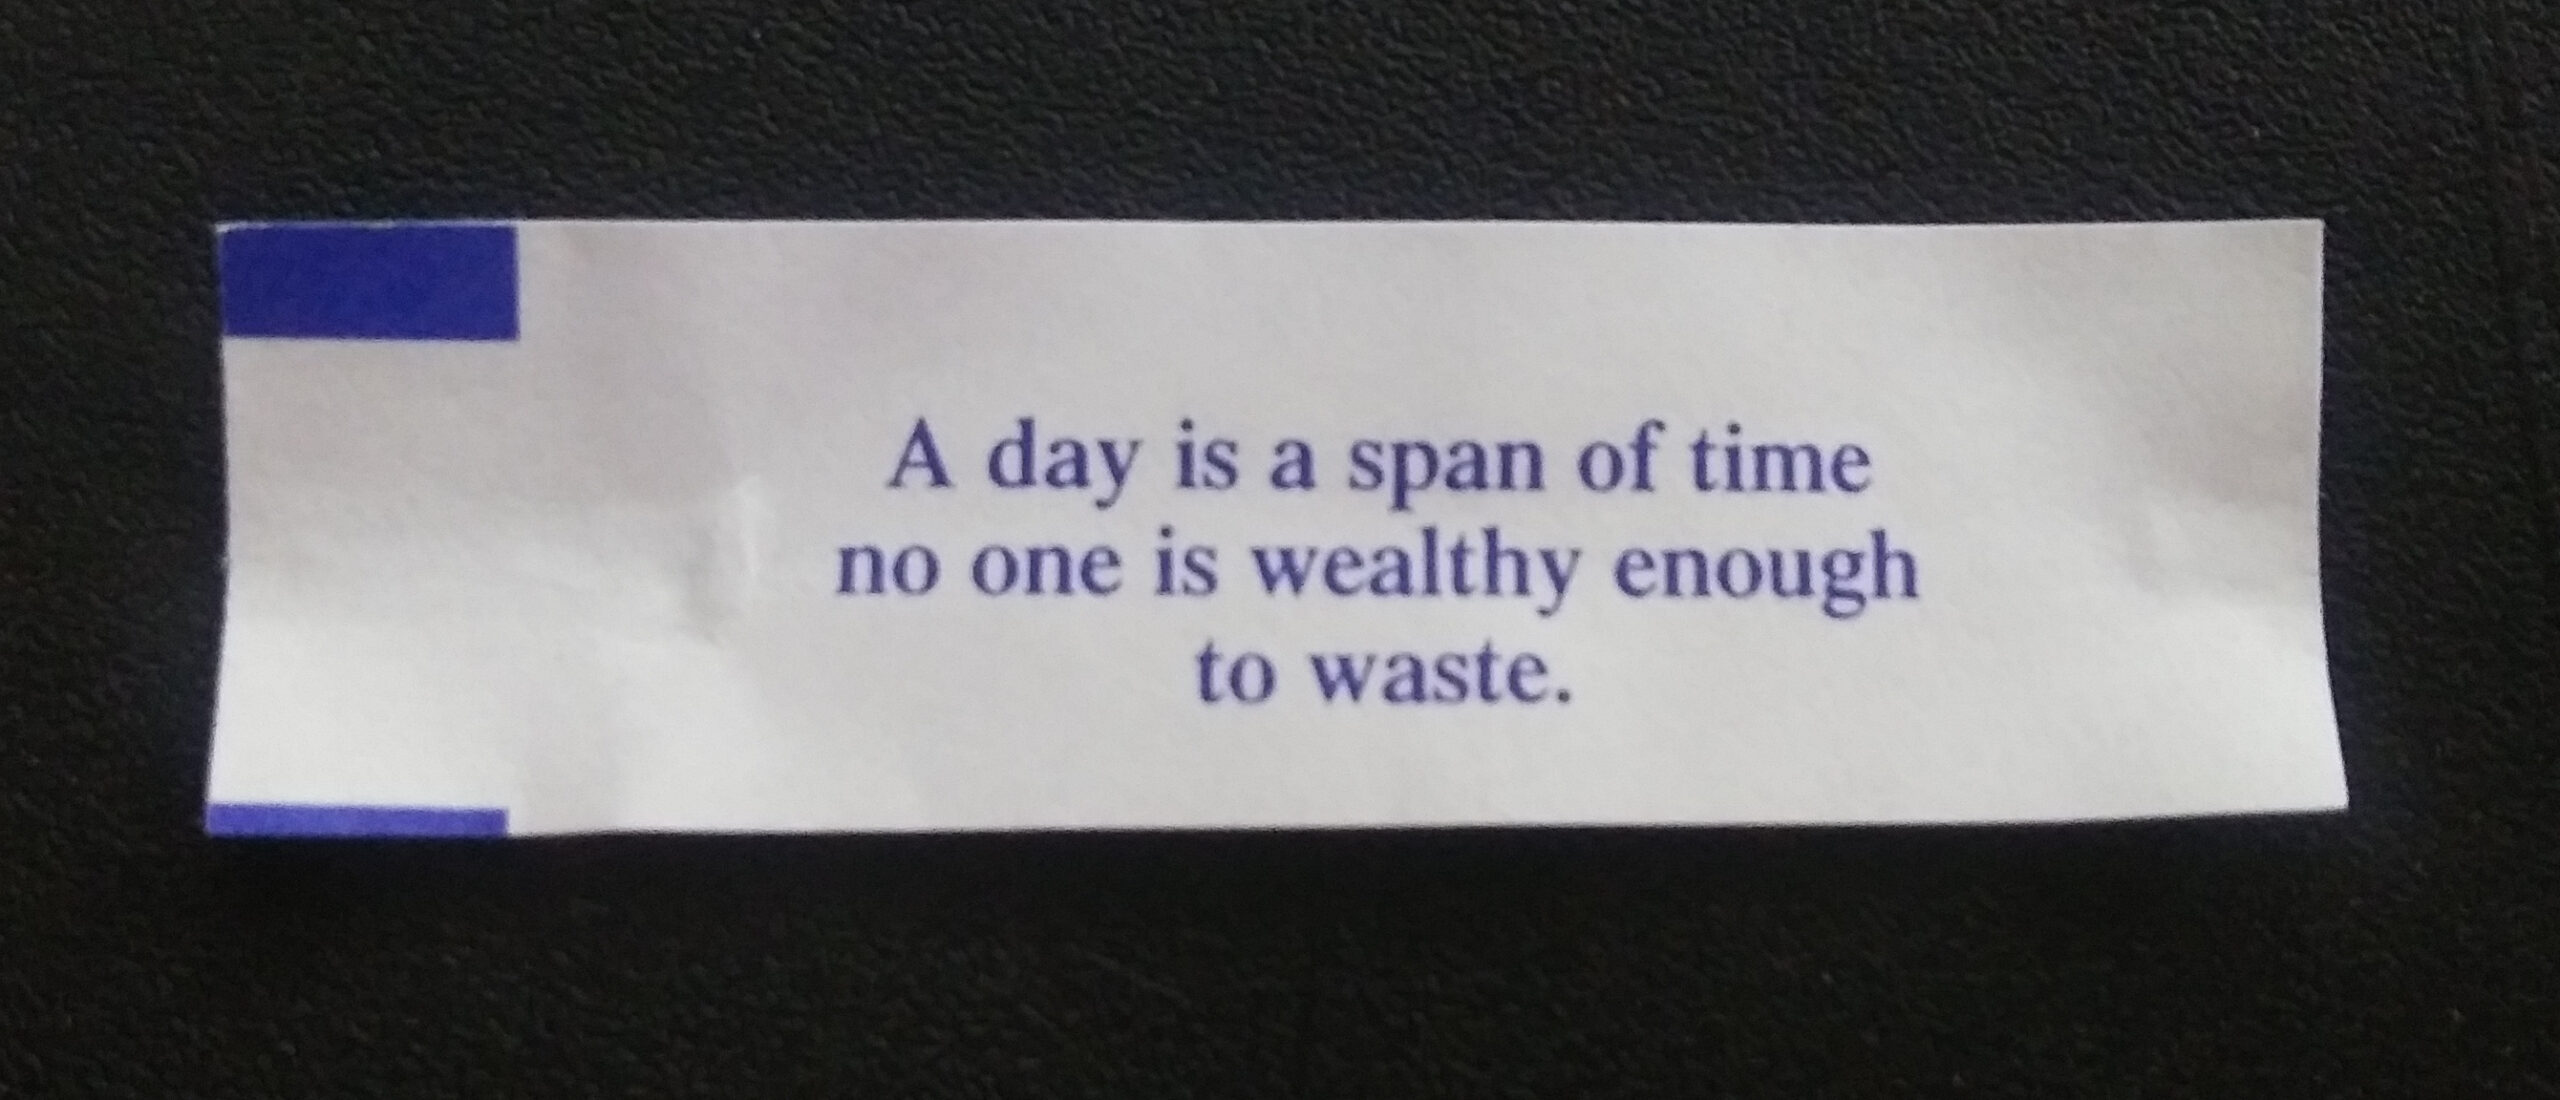 A day is a span of time no one is wealthy enough to waste.